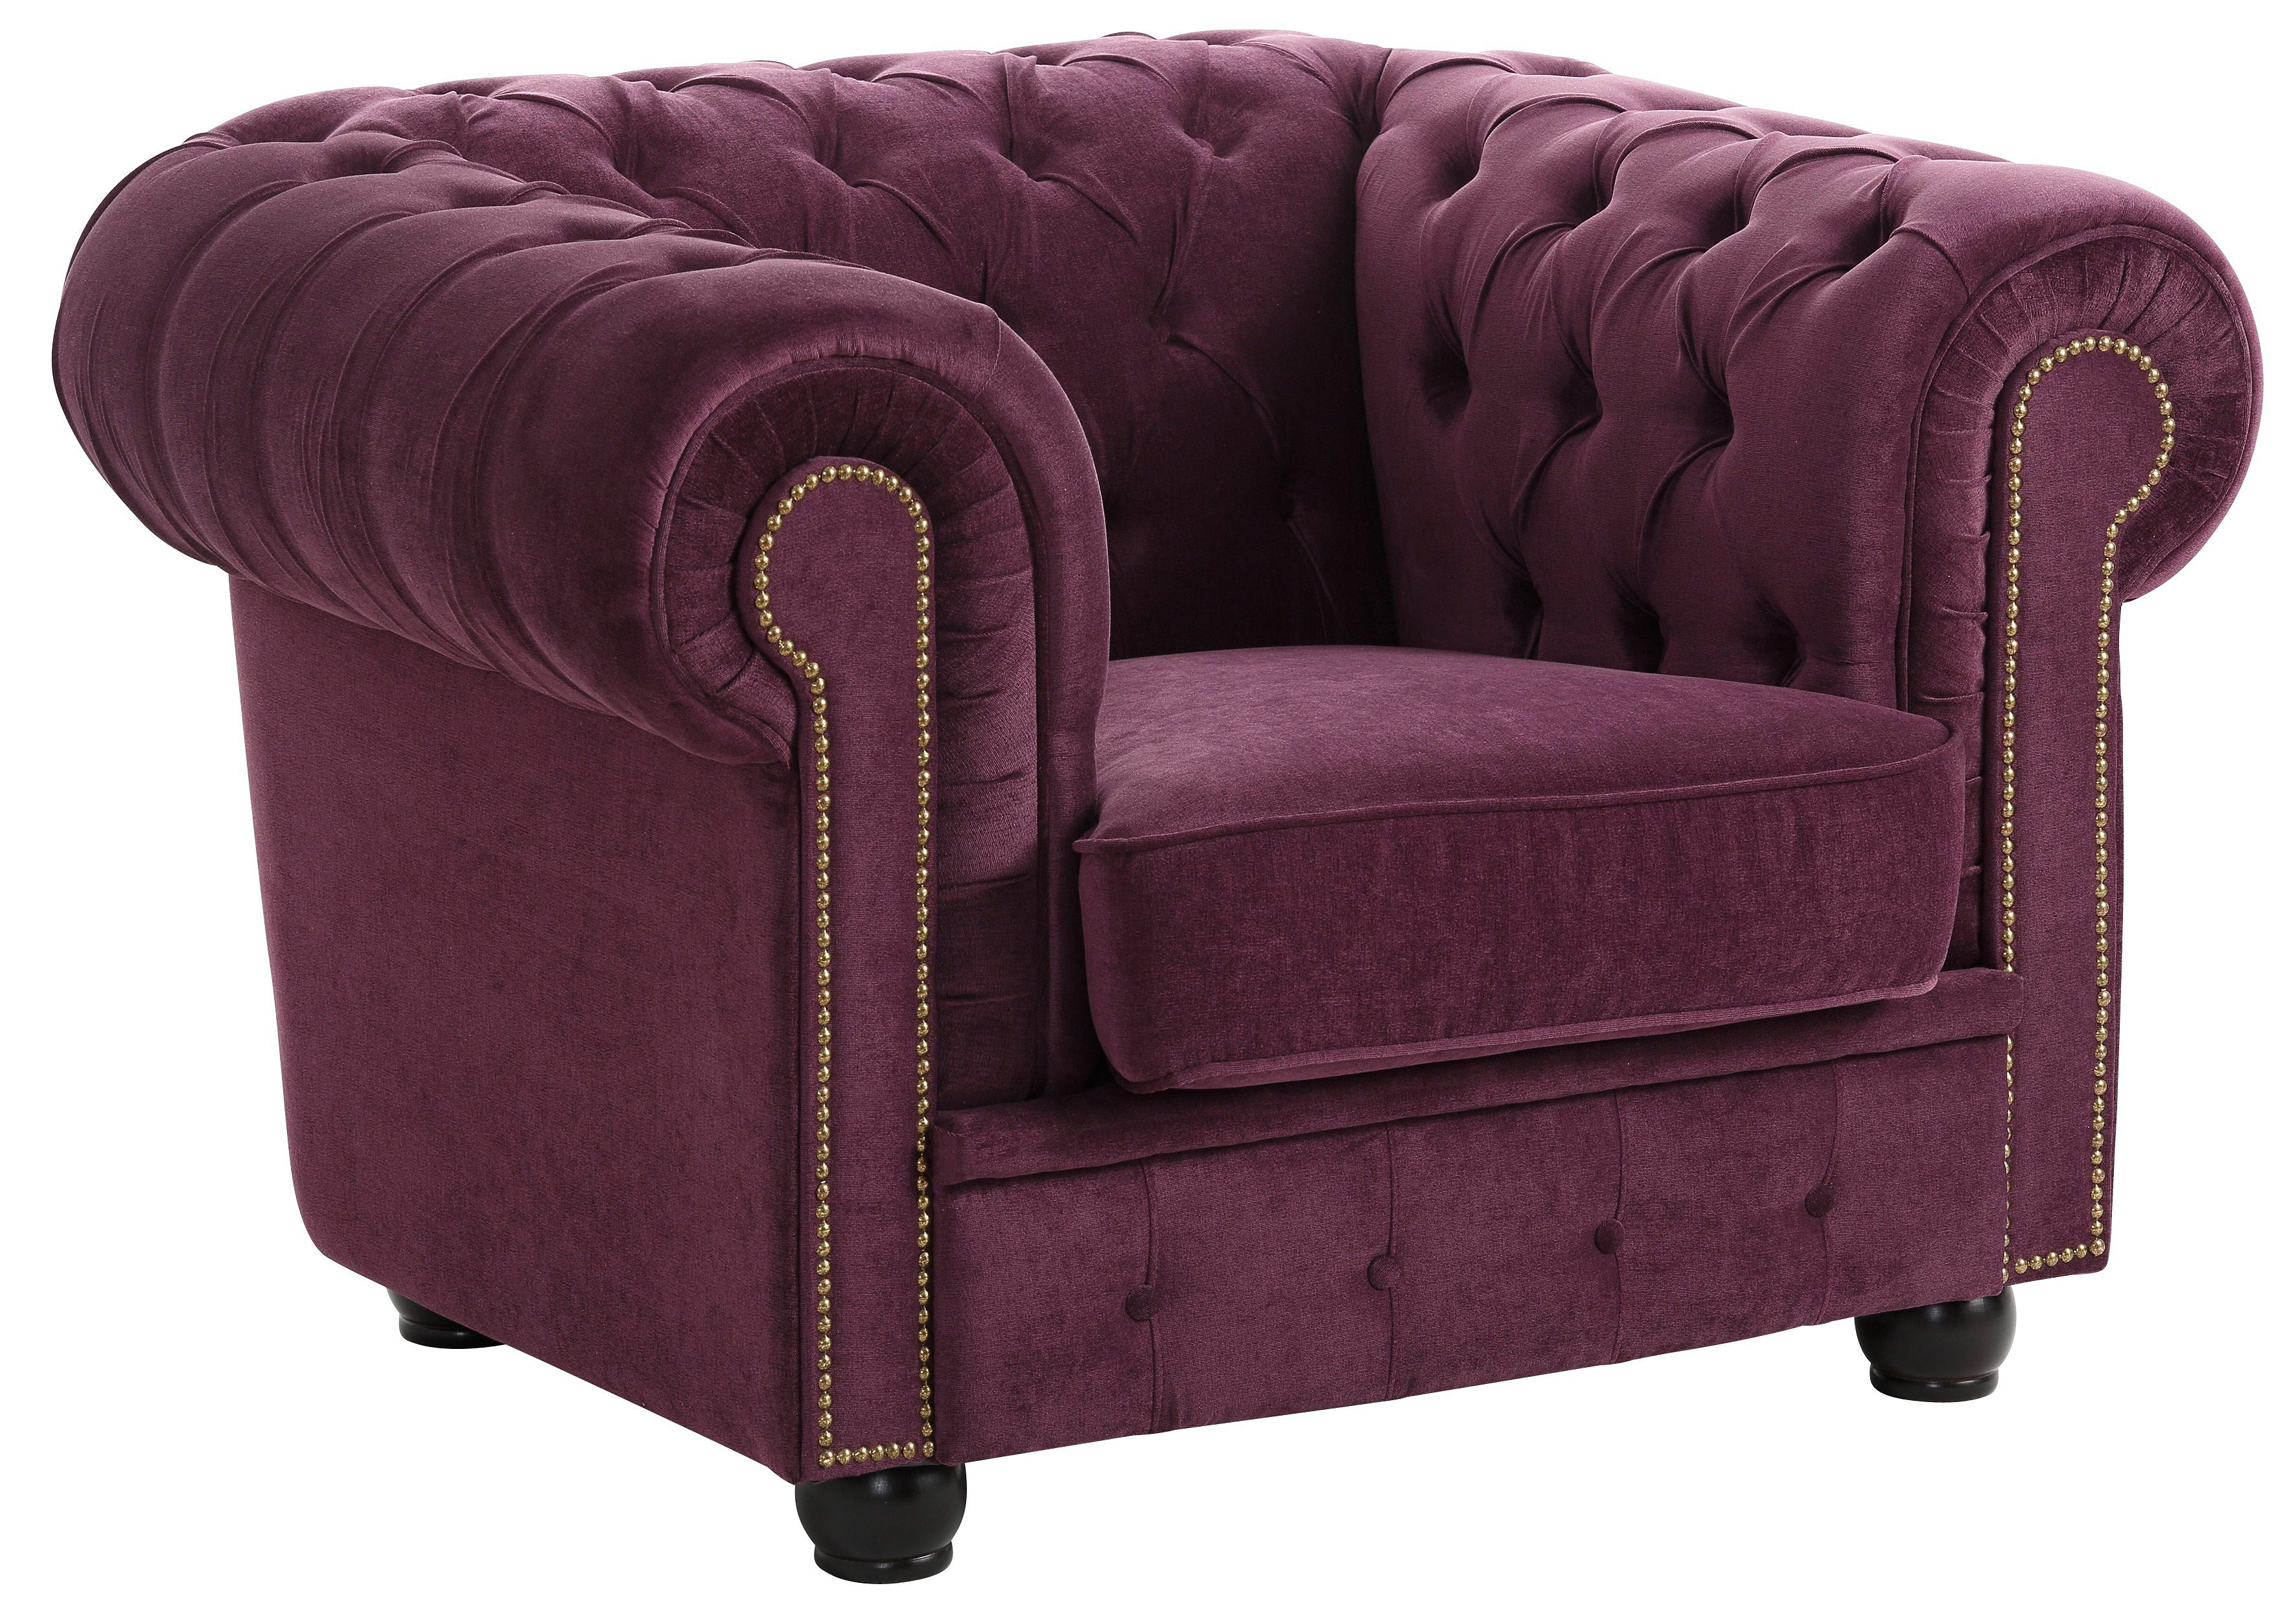 Max Winzer Chesterfield-Sessel Rover | Wohnzimmer > Sessel > Chesterfield Sessel | Lila | Max Winzer